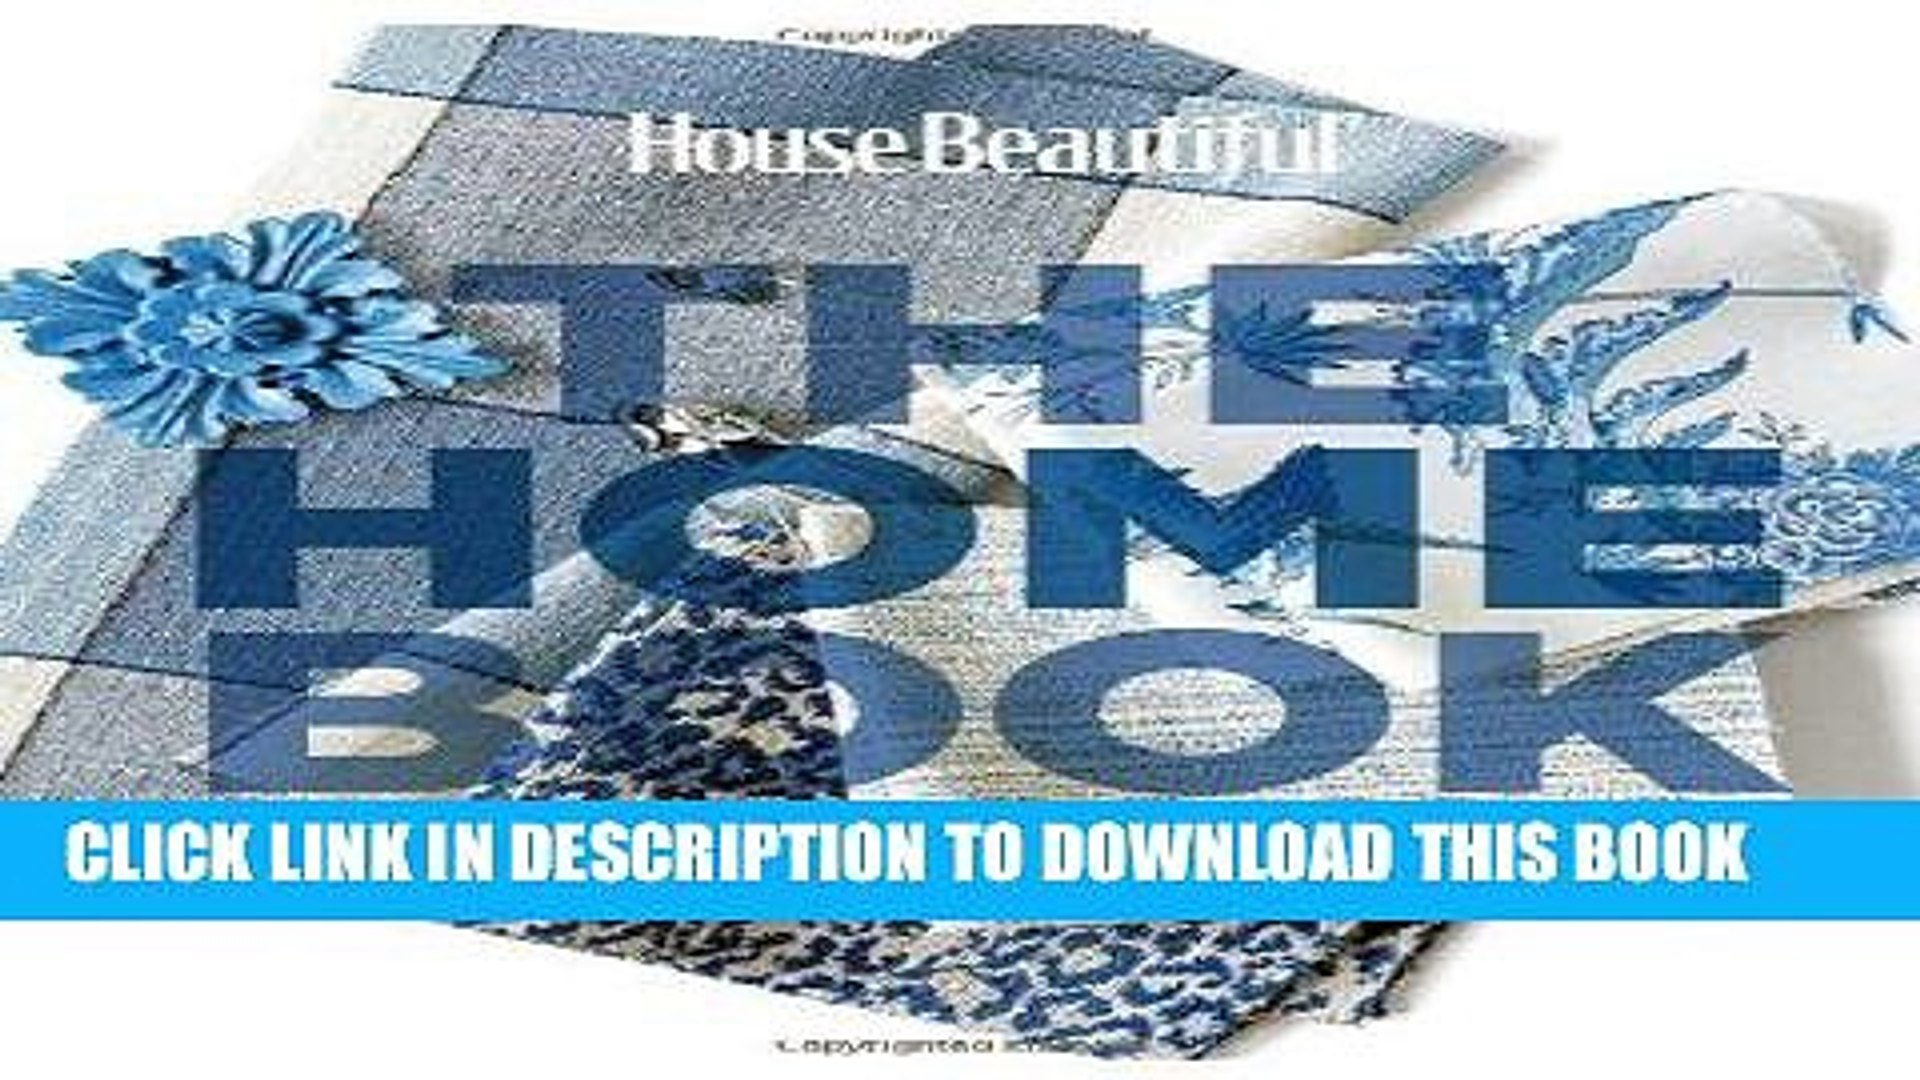 Ebook House Beautiful The Home Book: Creating a Beautiful Home of Your Own (House Beautiful